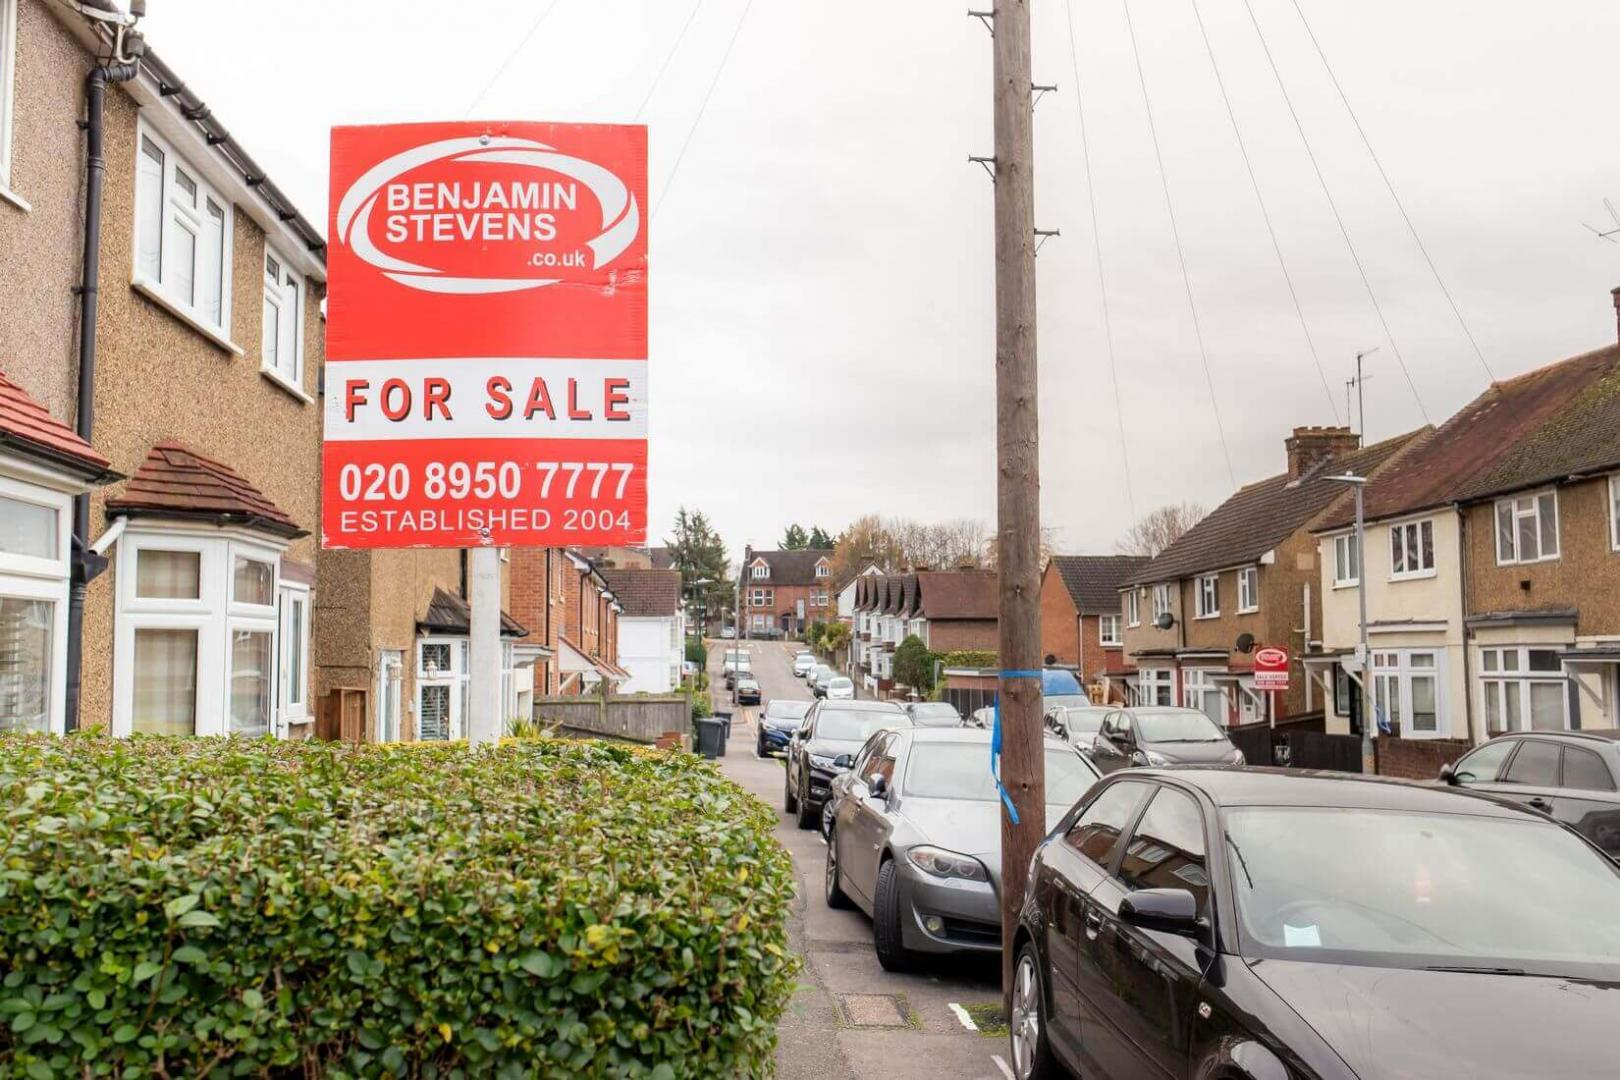 Put yourself in position to land dream property